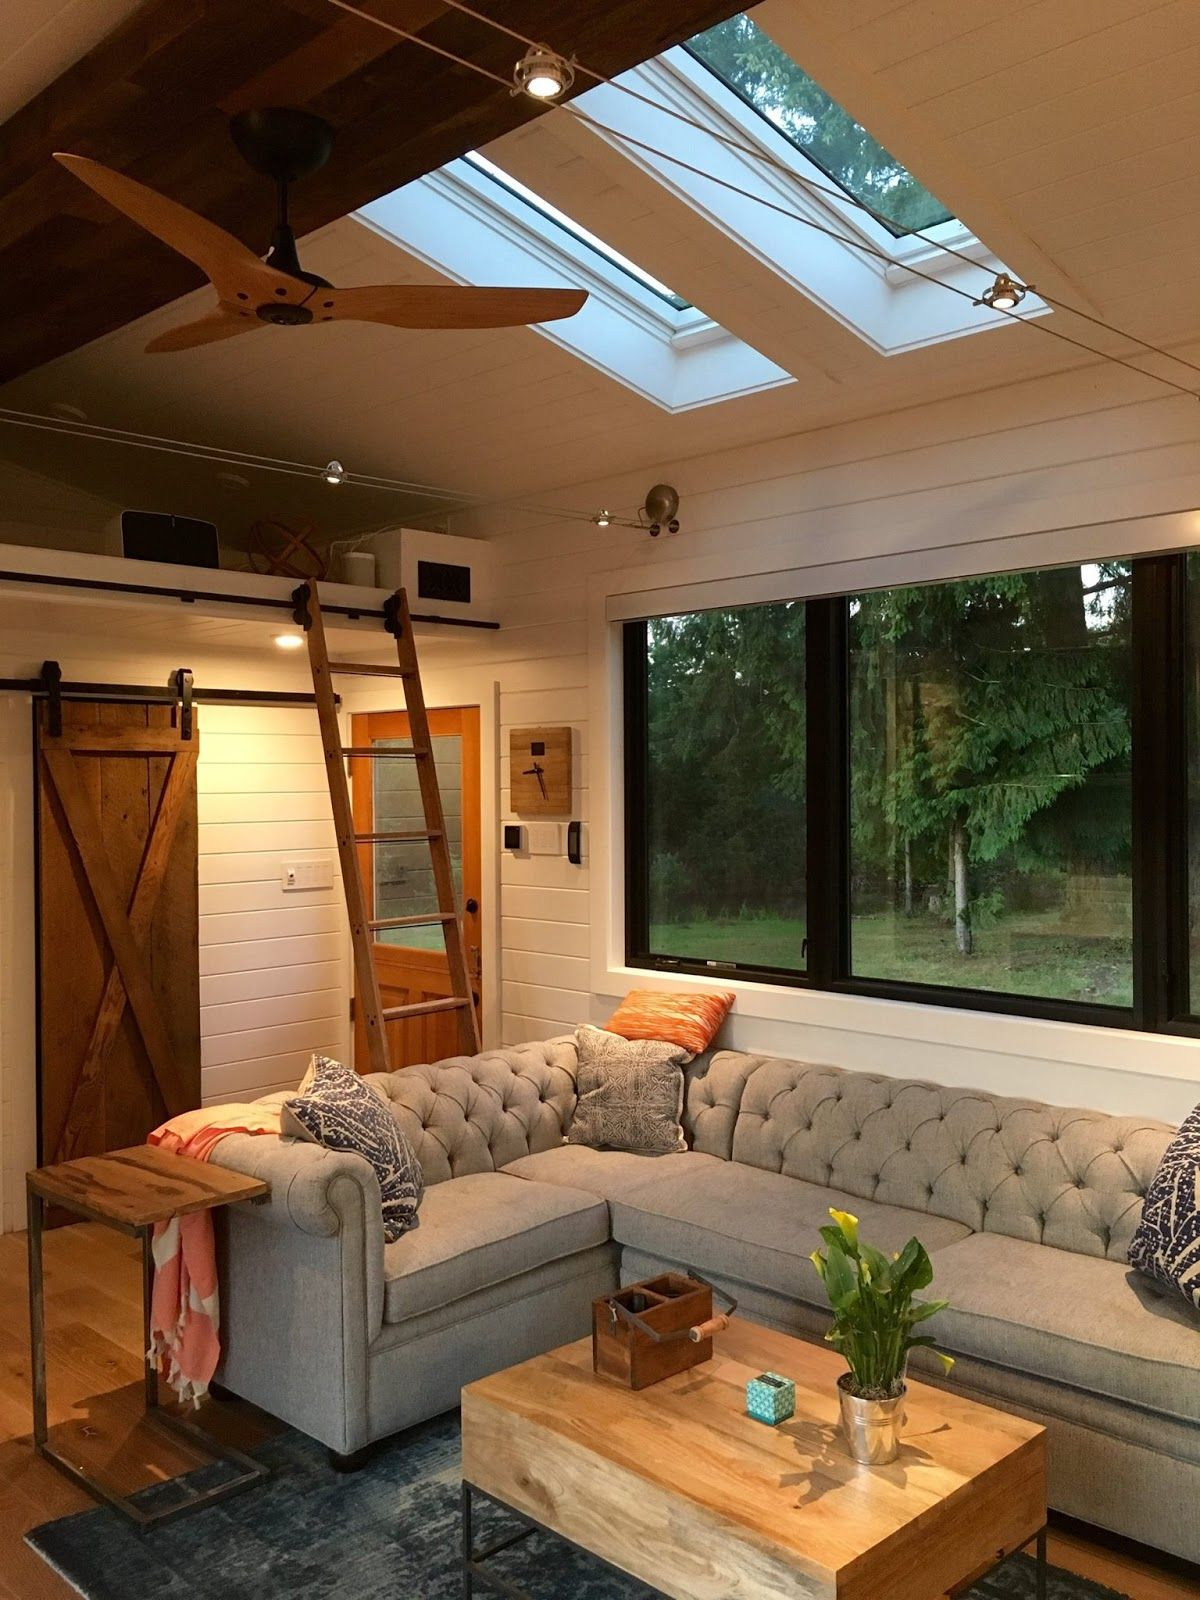 a stunning tiny house on wheels by tiny heirloom called the a stunning tiny house on wheels by tiny heirloom called the